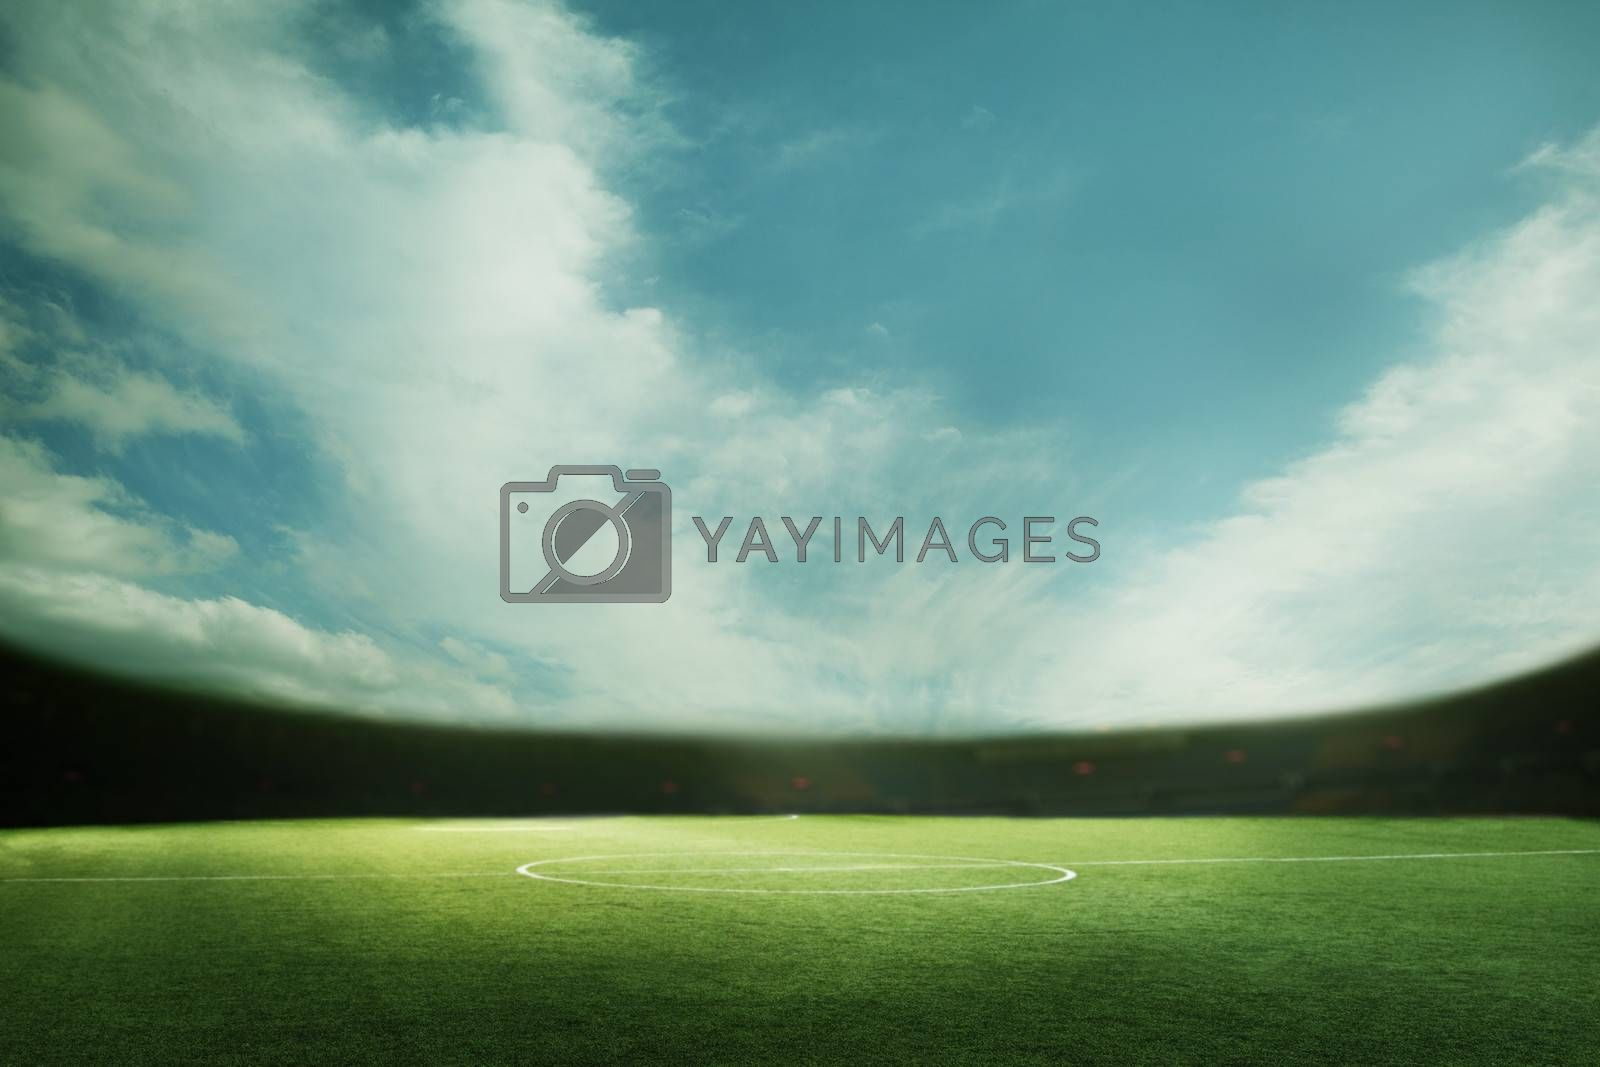 Digital coposit of soccer field and blue sky by XiXinXing